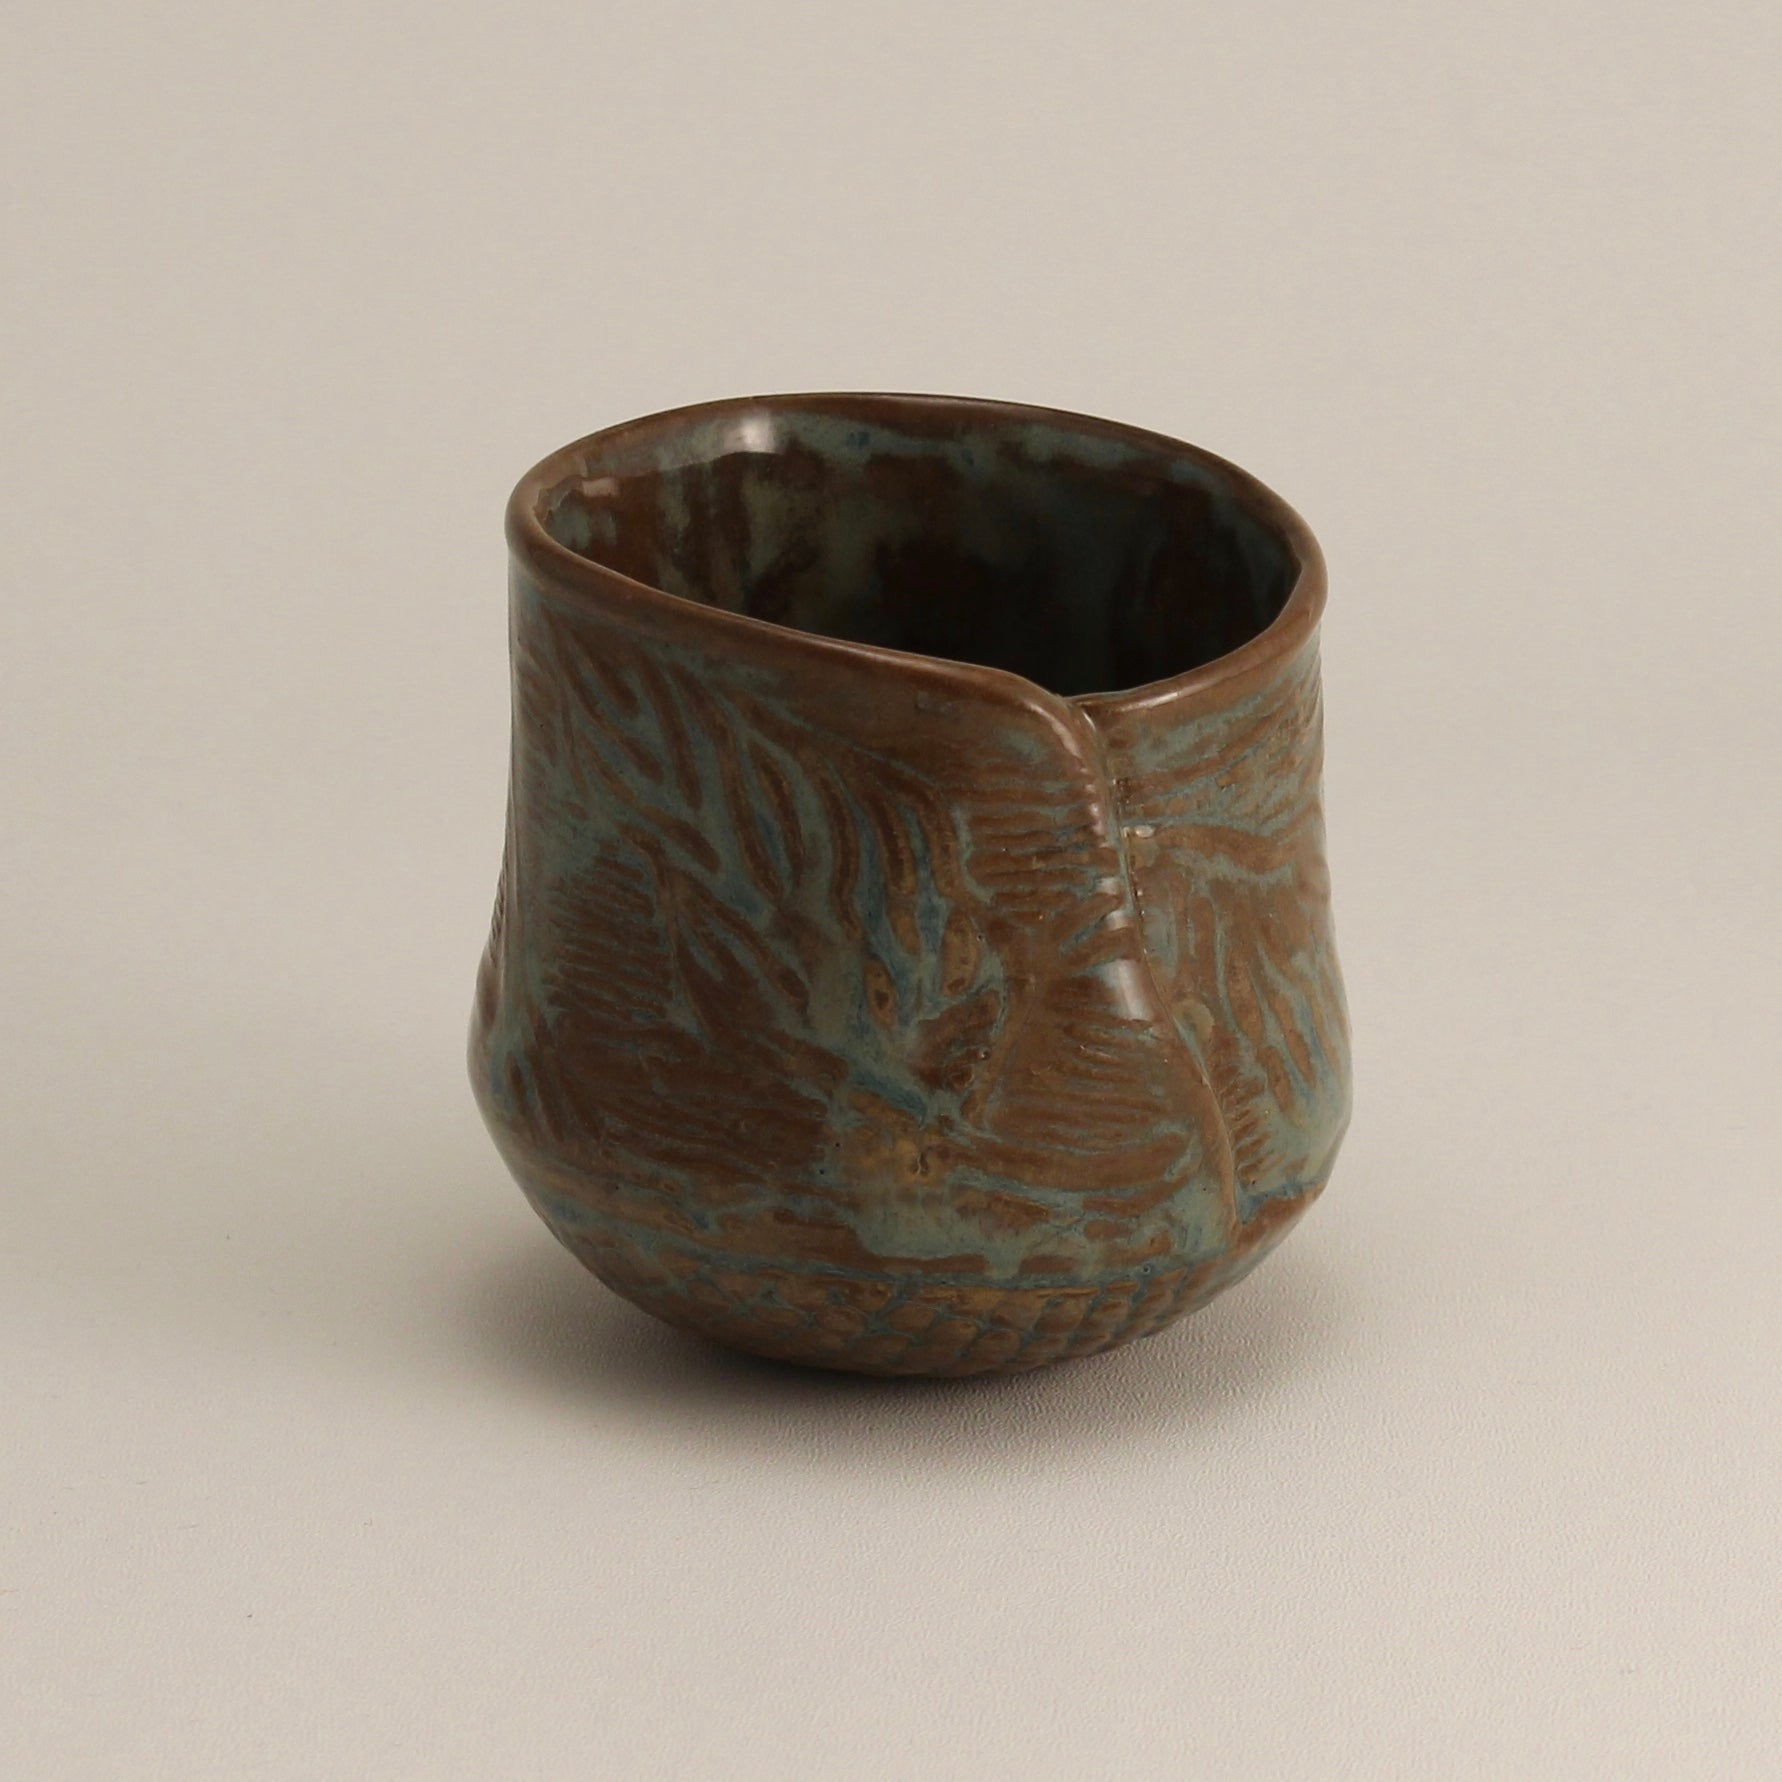 Round Bottomed Cup with Leaves